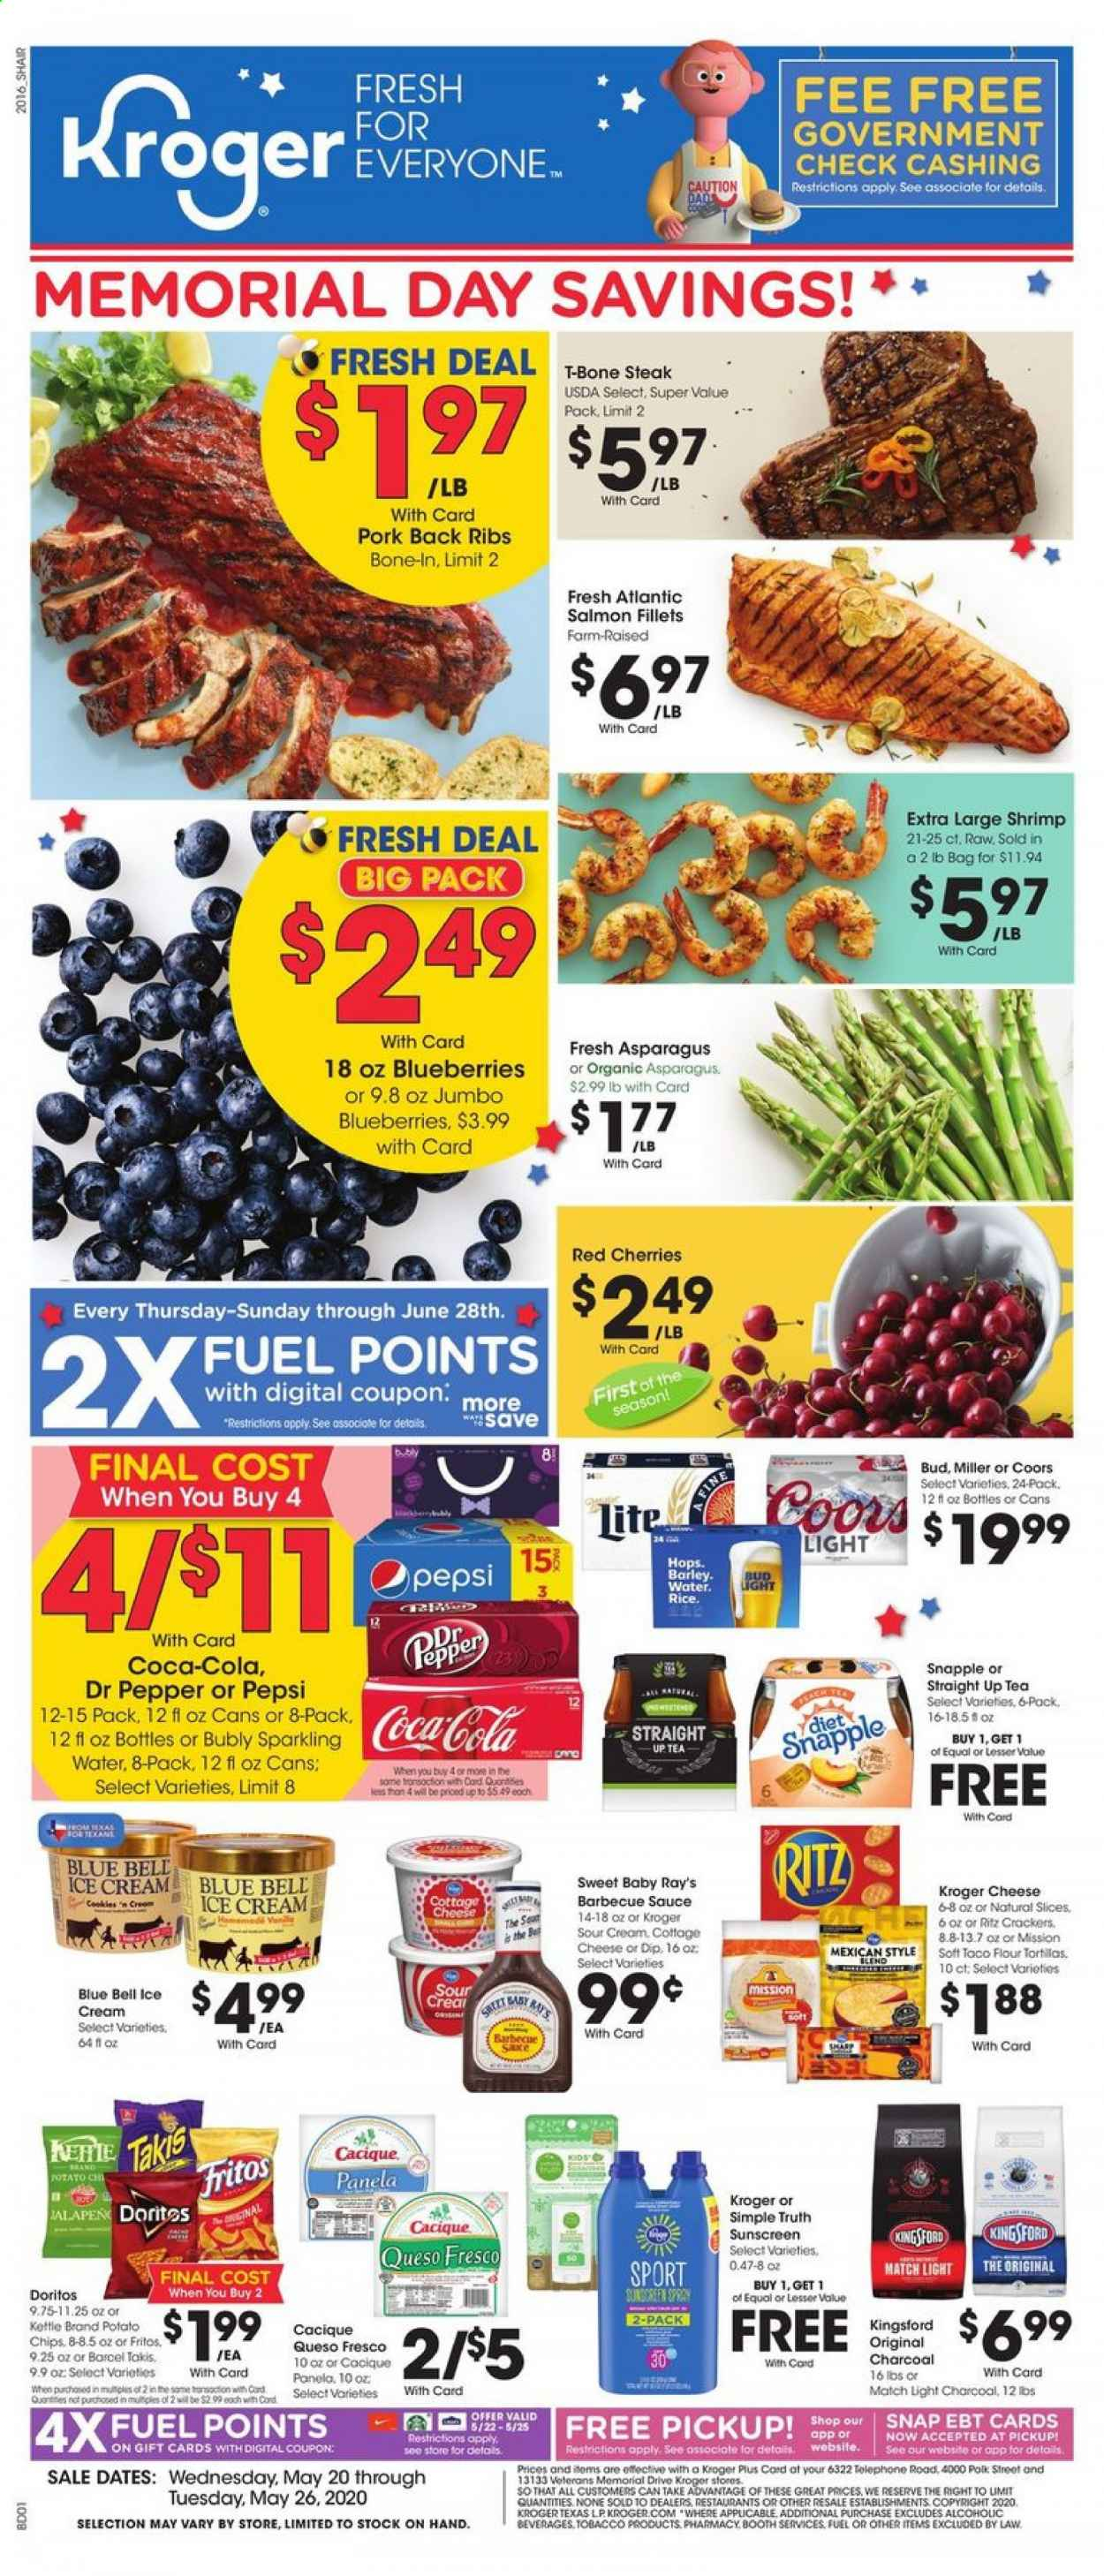 Kroger Flyer - 05.20.2020 - 05.26.2020 - Sales products - Bud Light, Coors, asparagus, blueberries, cherries, tortillas, salmon, shrimps, queso fresco, cheese, sour cream, sauce, ice cream, cracker, crackers, Doritos, potato chips, chips, flour, barley, Fritos, rice, pepper, barbecue sauce, Coca-Cola, Pepsi, Dr. Pepper, sparkling water, water, tea, t-bone steak, steak, pork meat, kettle, charcoal, fuel, ribs. Page 1.